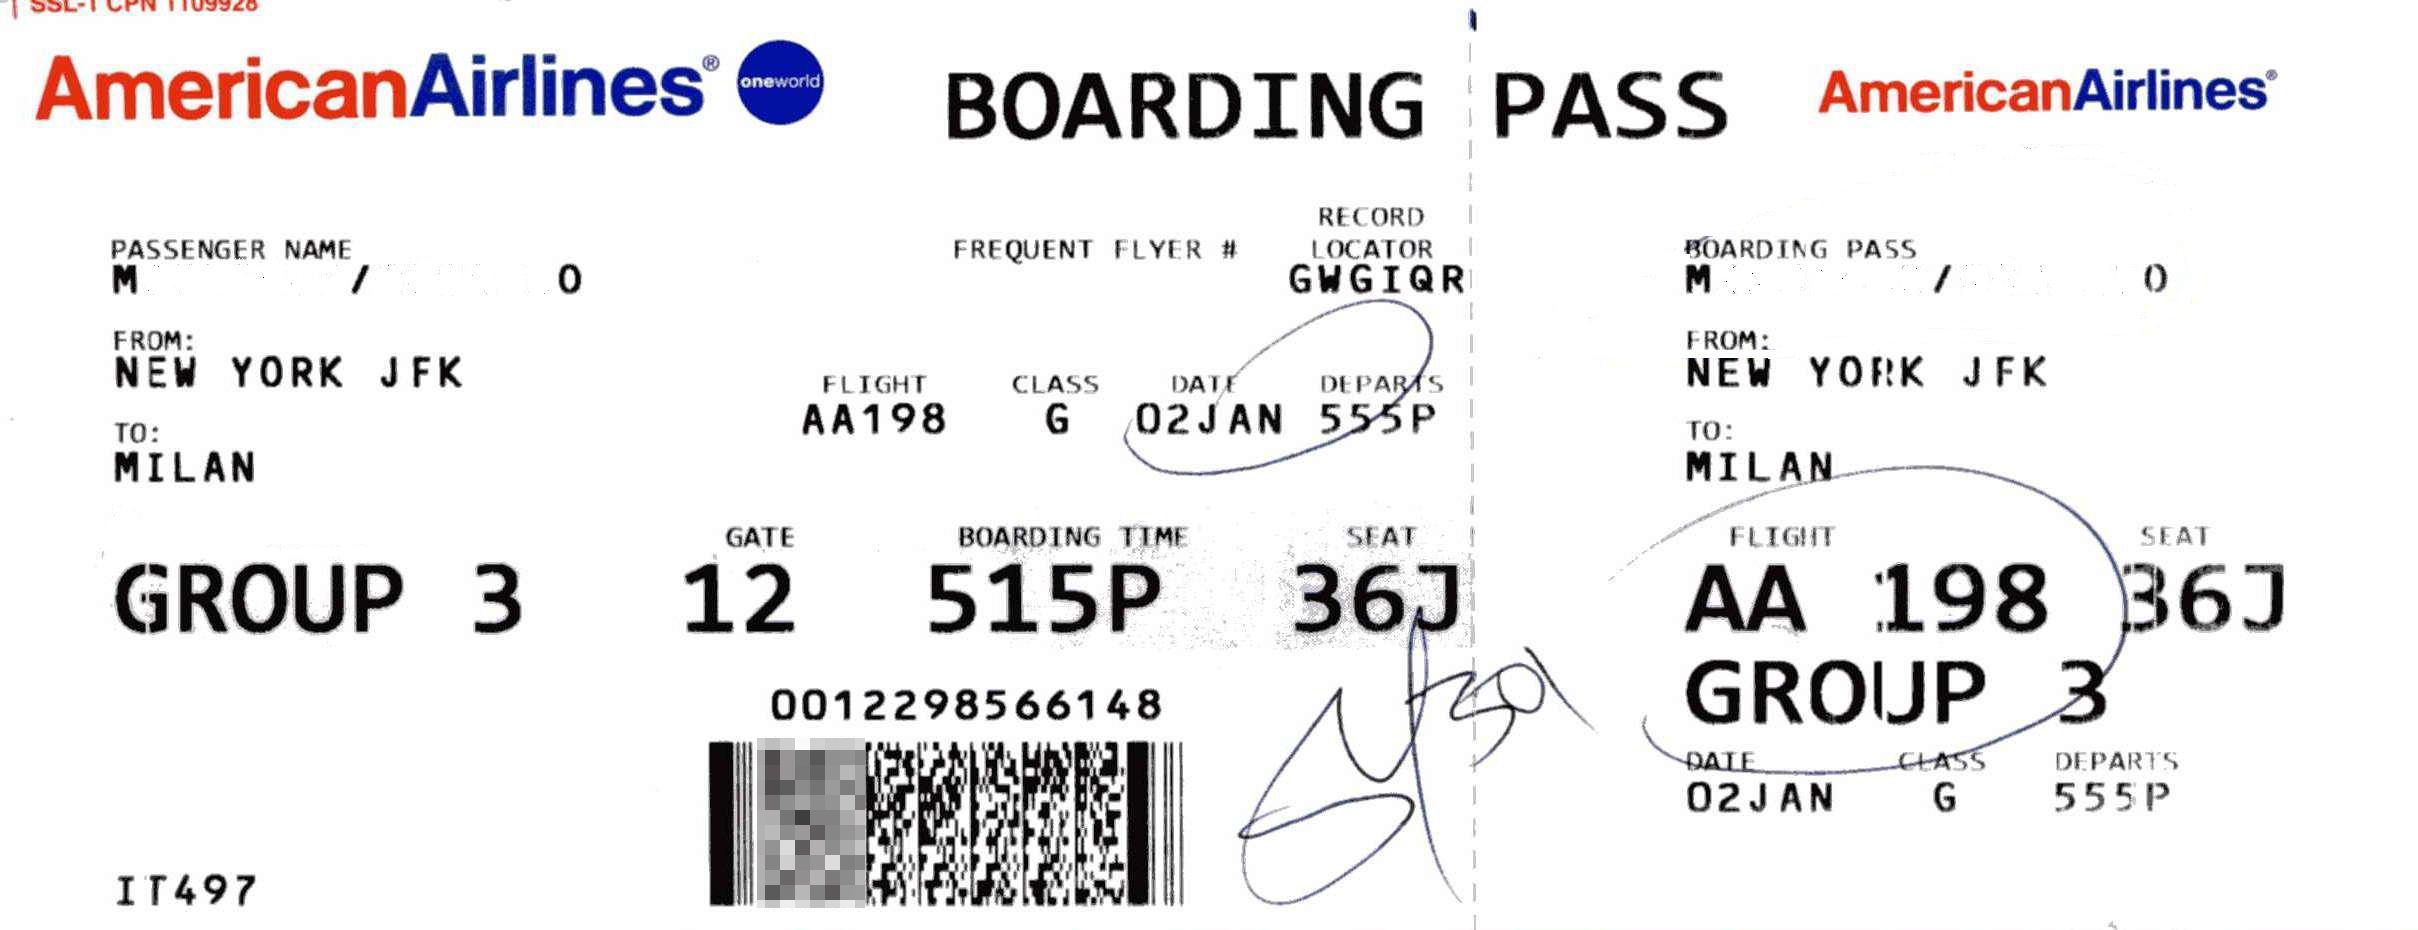 引用元 https://upload.wikimedia.org/wikipedia/commons/7/78/American_Airlines_boarding_pass_AA_198.jpg